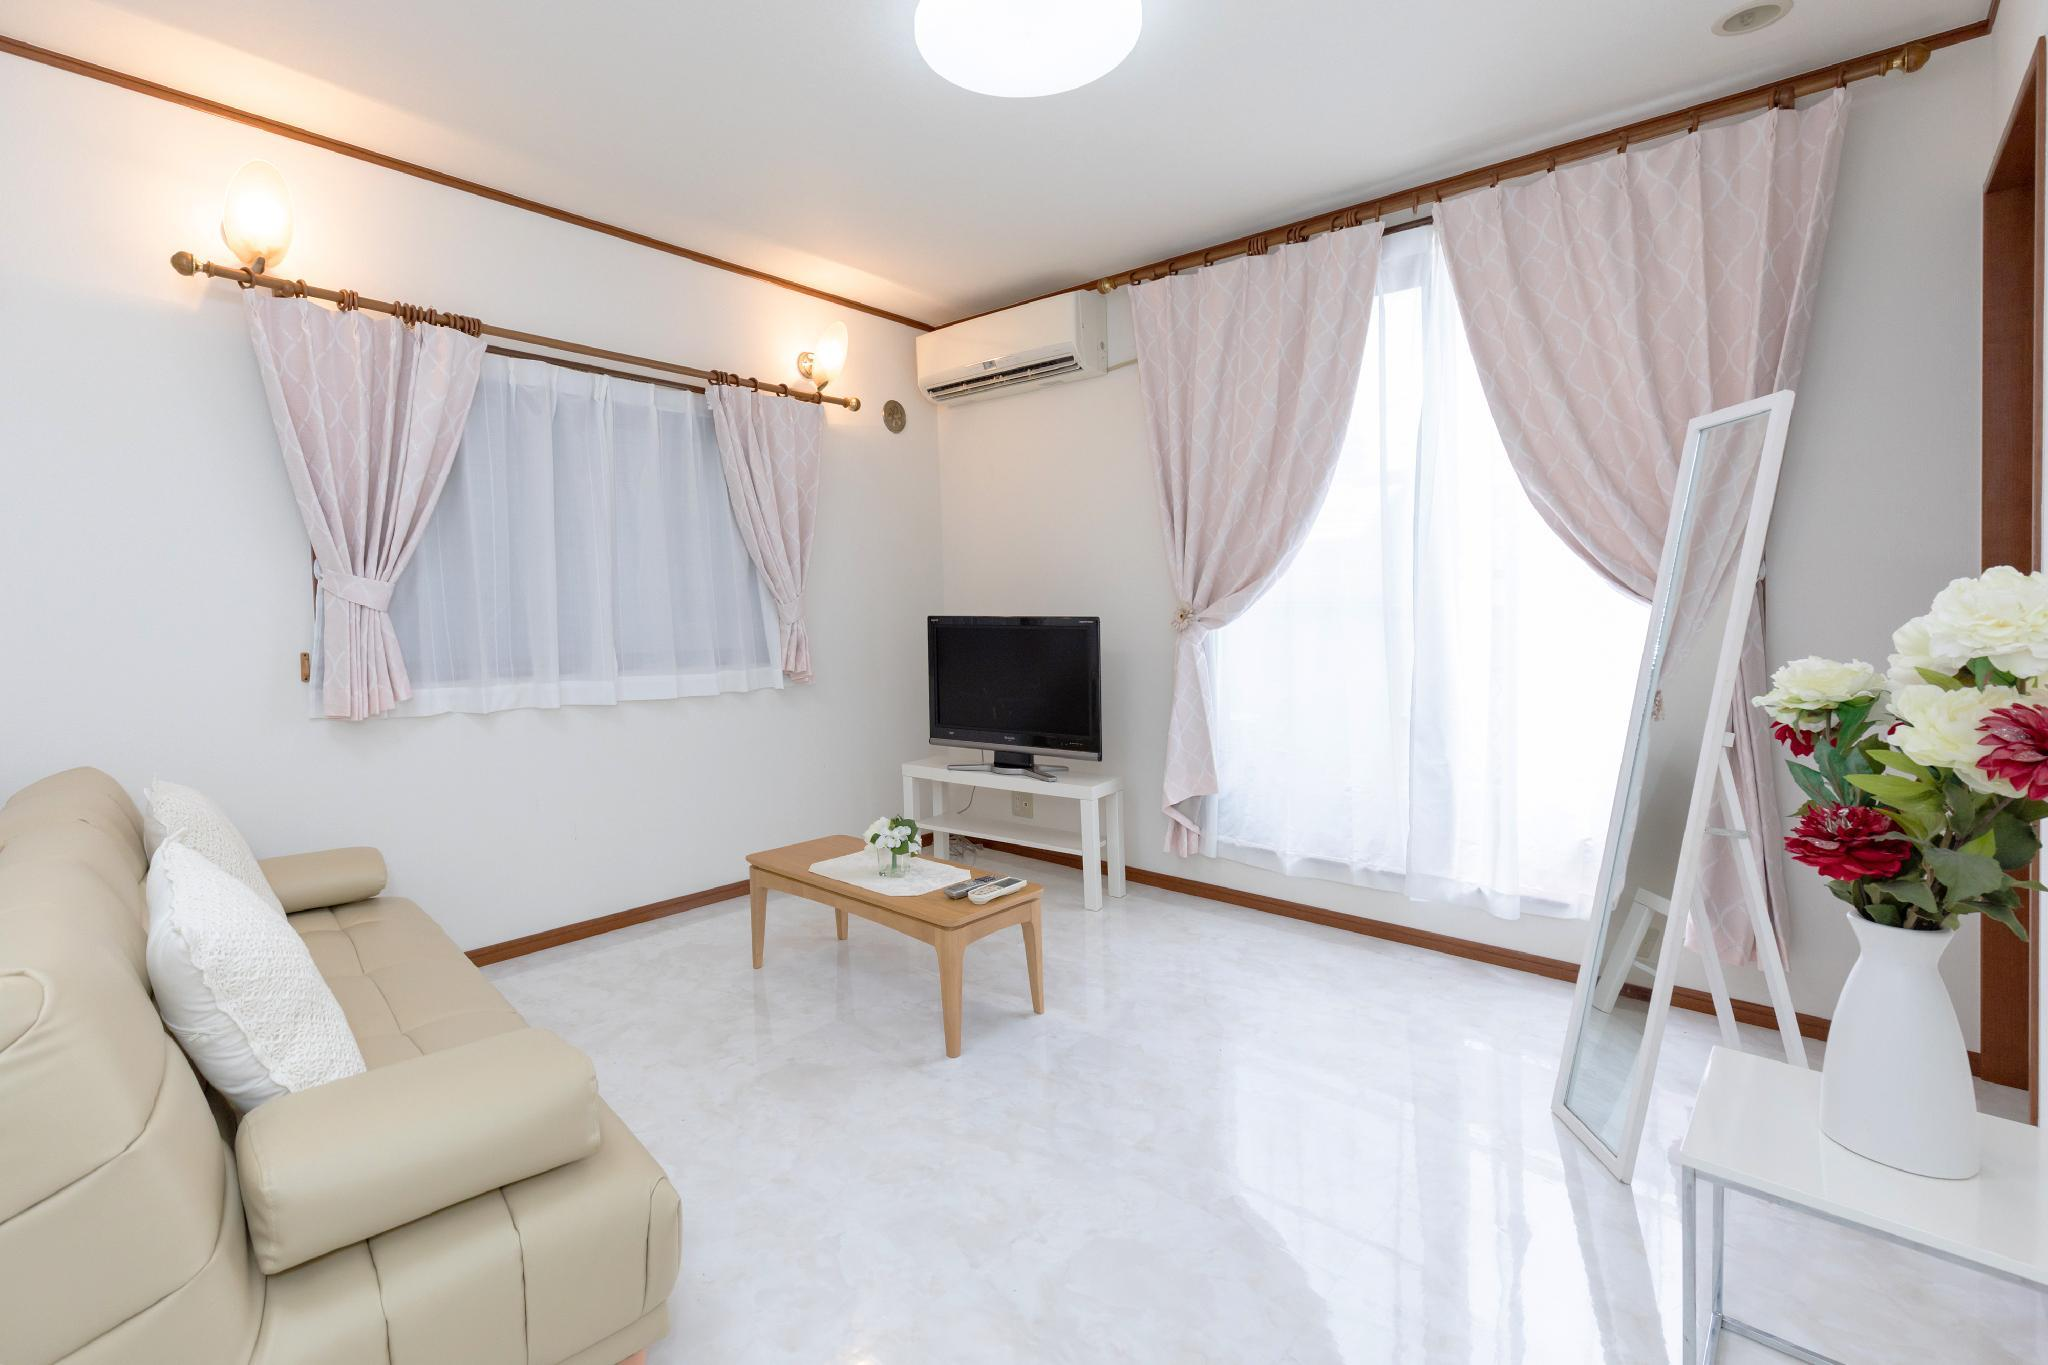 4 Bed Room And 7 Min To Shinimamiya STN Large House